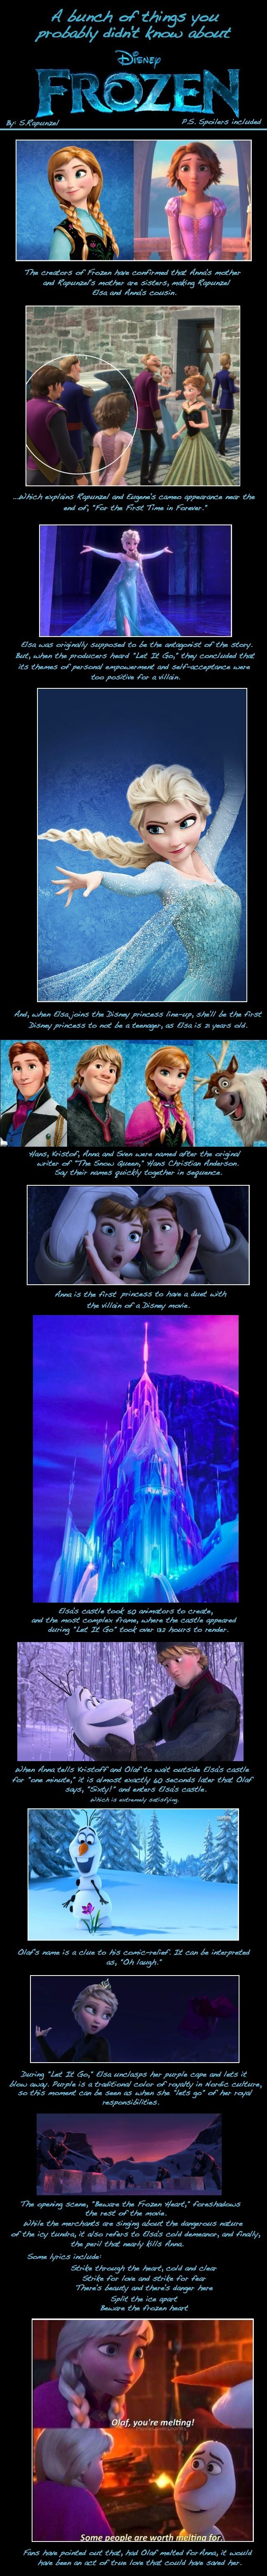 Incase you needed to know more about Frozen